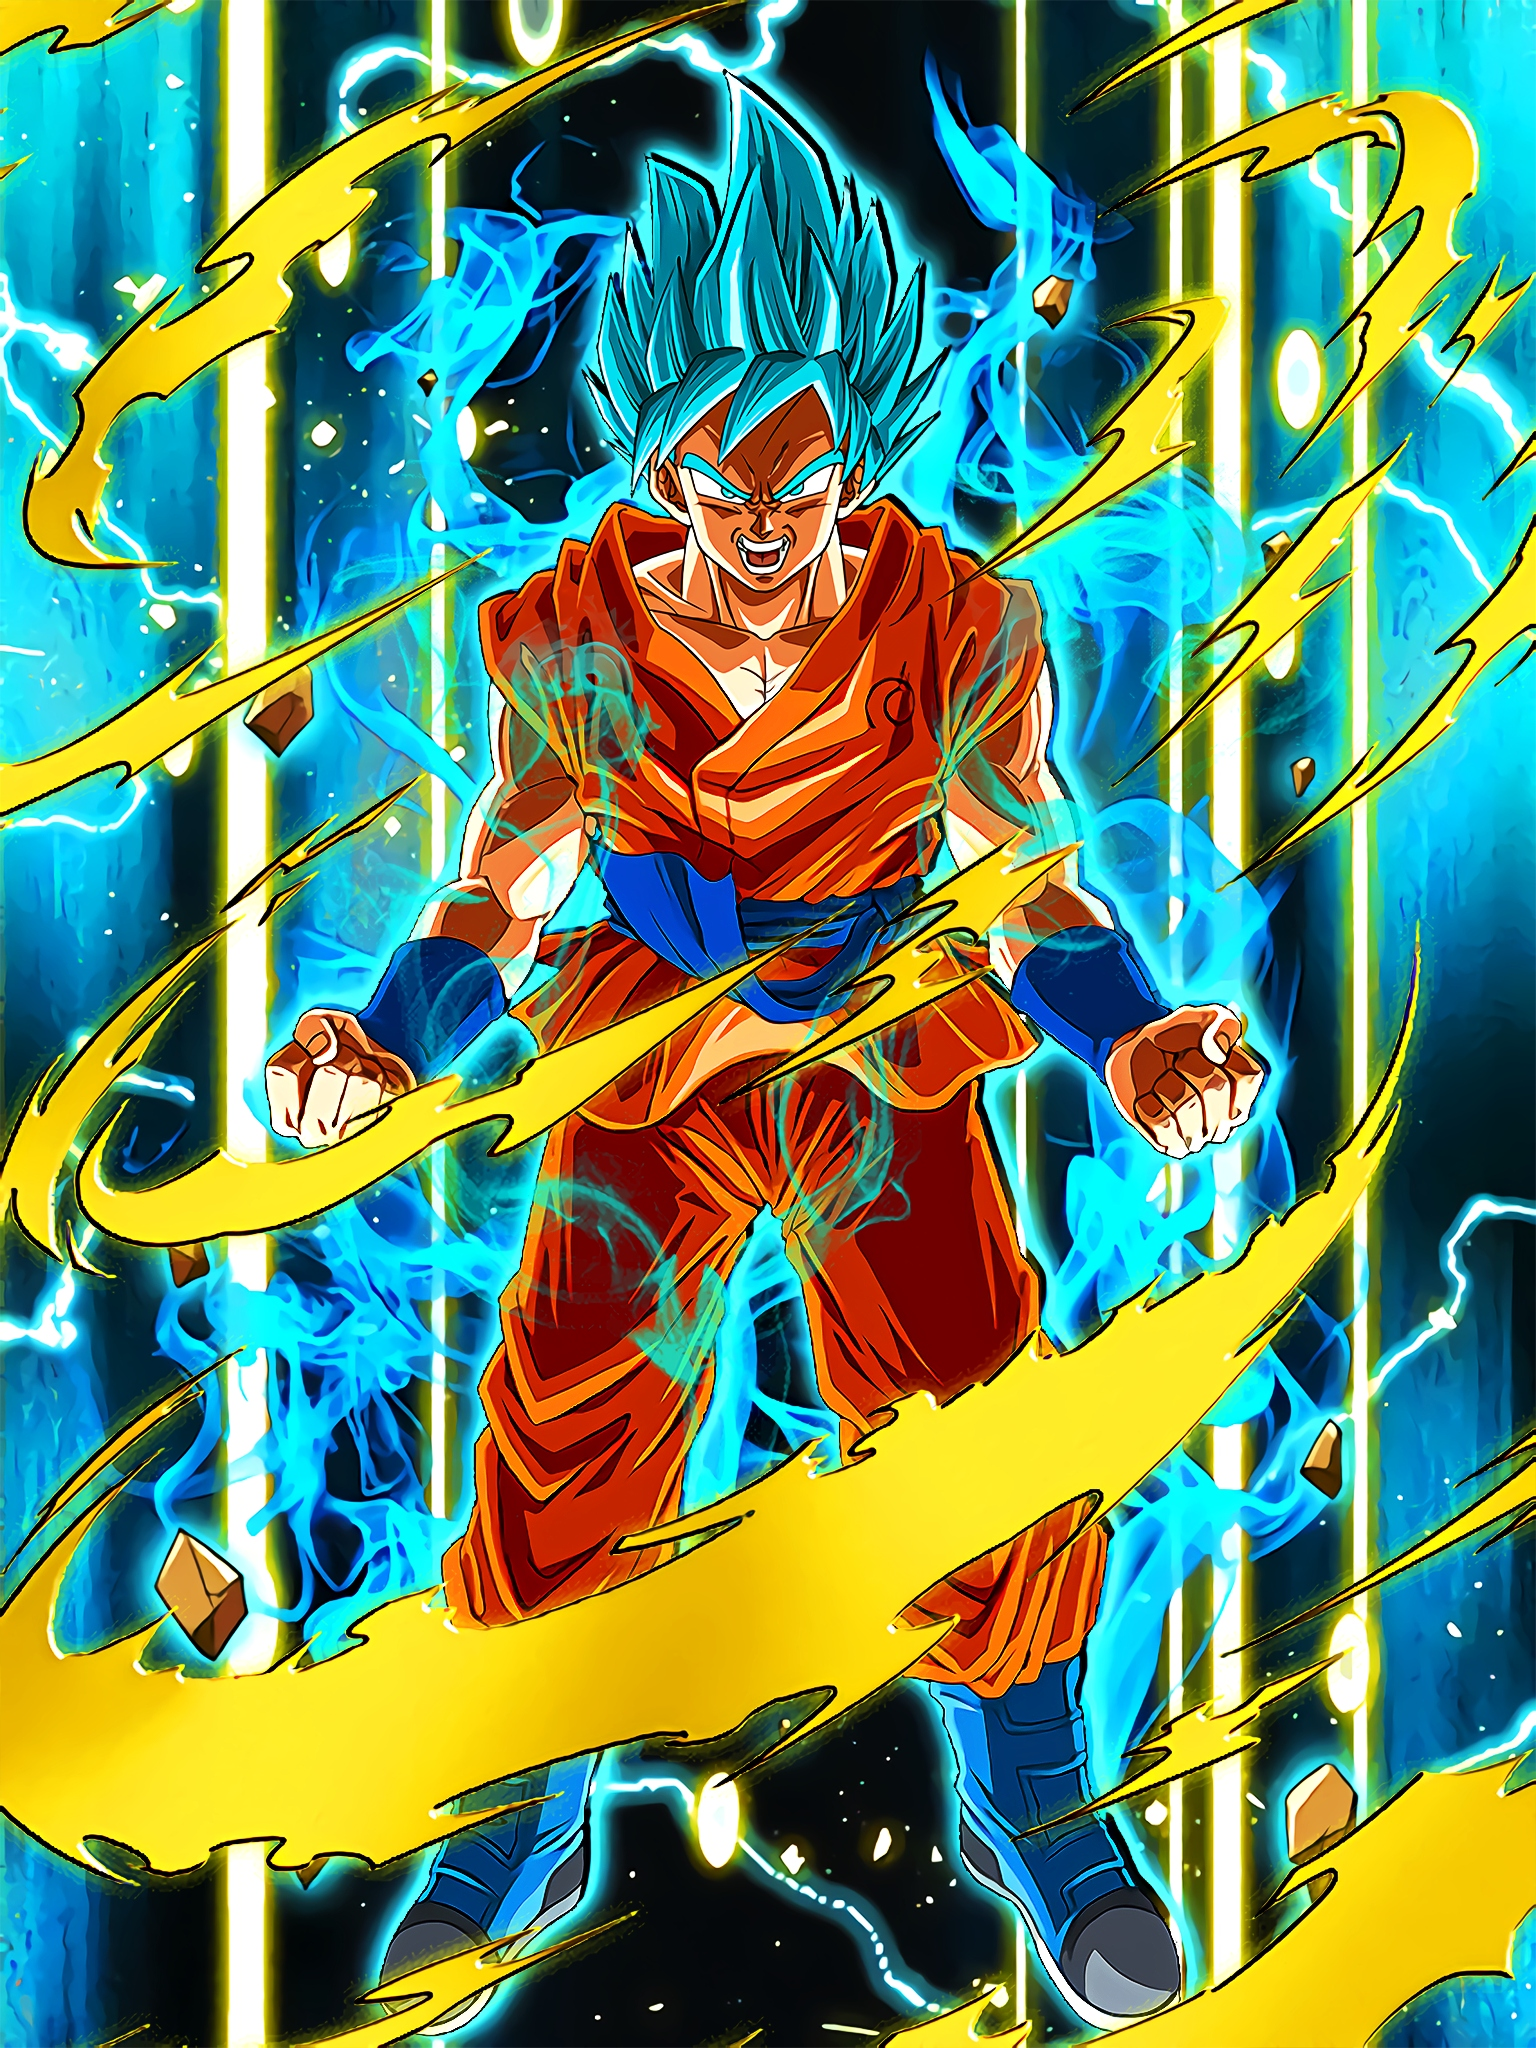 Divine Evolution Super Saiyan God SS Goku Art (Dragon Ball Z Dokkan Battle).jpg